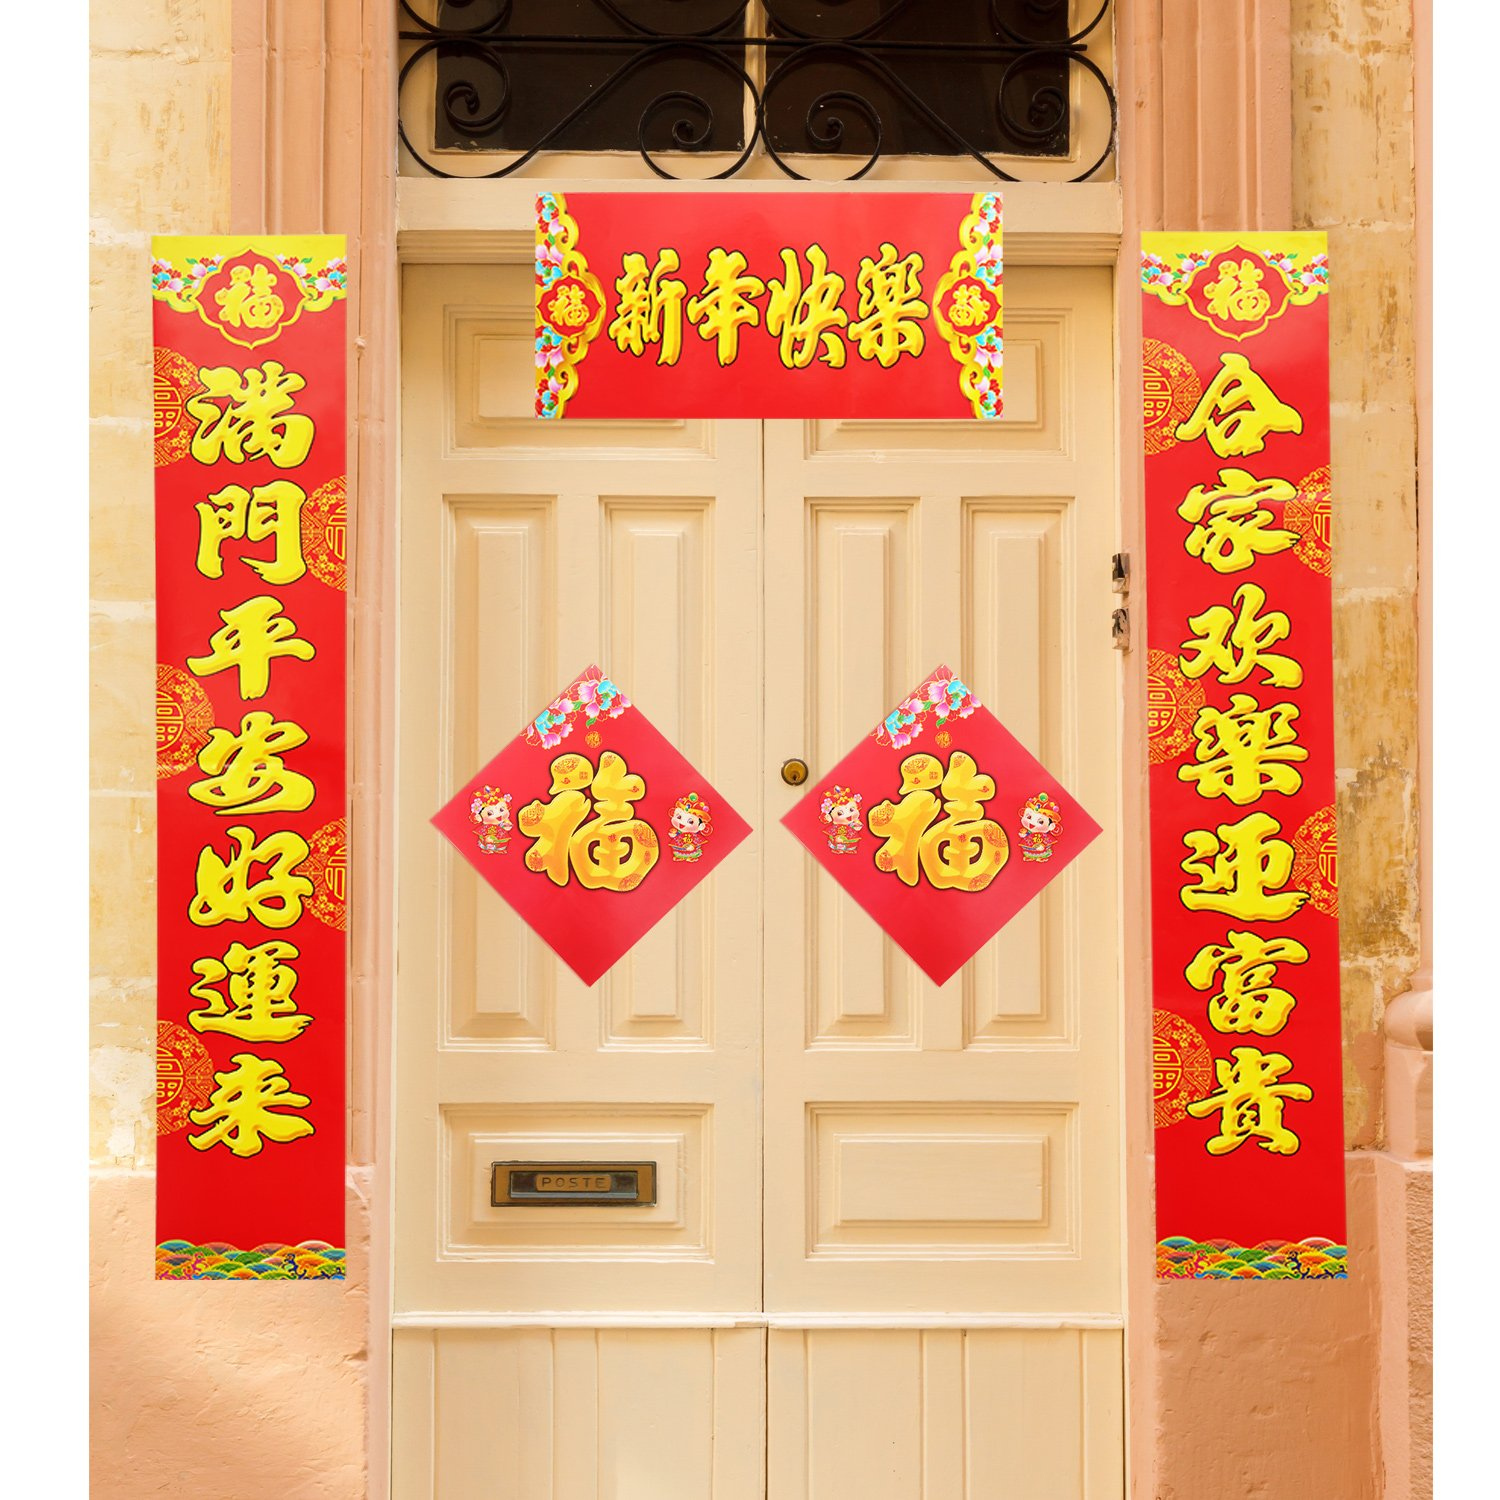 Mtlee Chinese Couplet Decorative Gift Kit for 2019 Chinese New Year Spring Festival, Includes Chun Lian, Fu Characters, Chinese Fu Stickers, Door Stickers, Red Envelopes, FU Bag (Set of 27 Pieces) by Mtlee (Image #4)